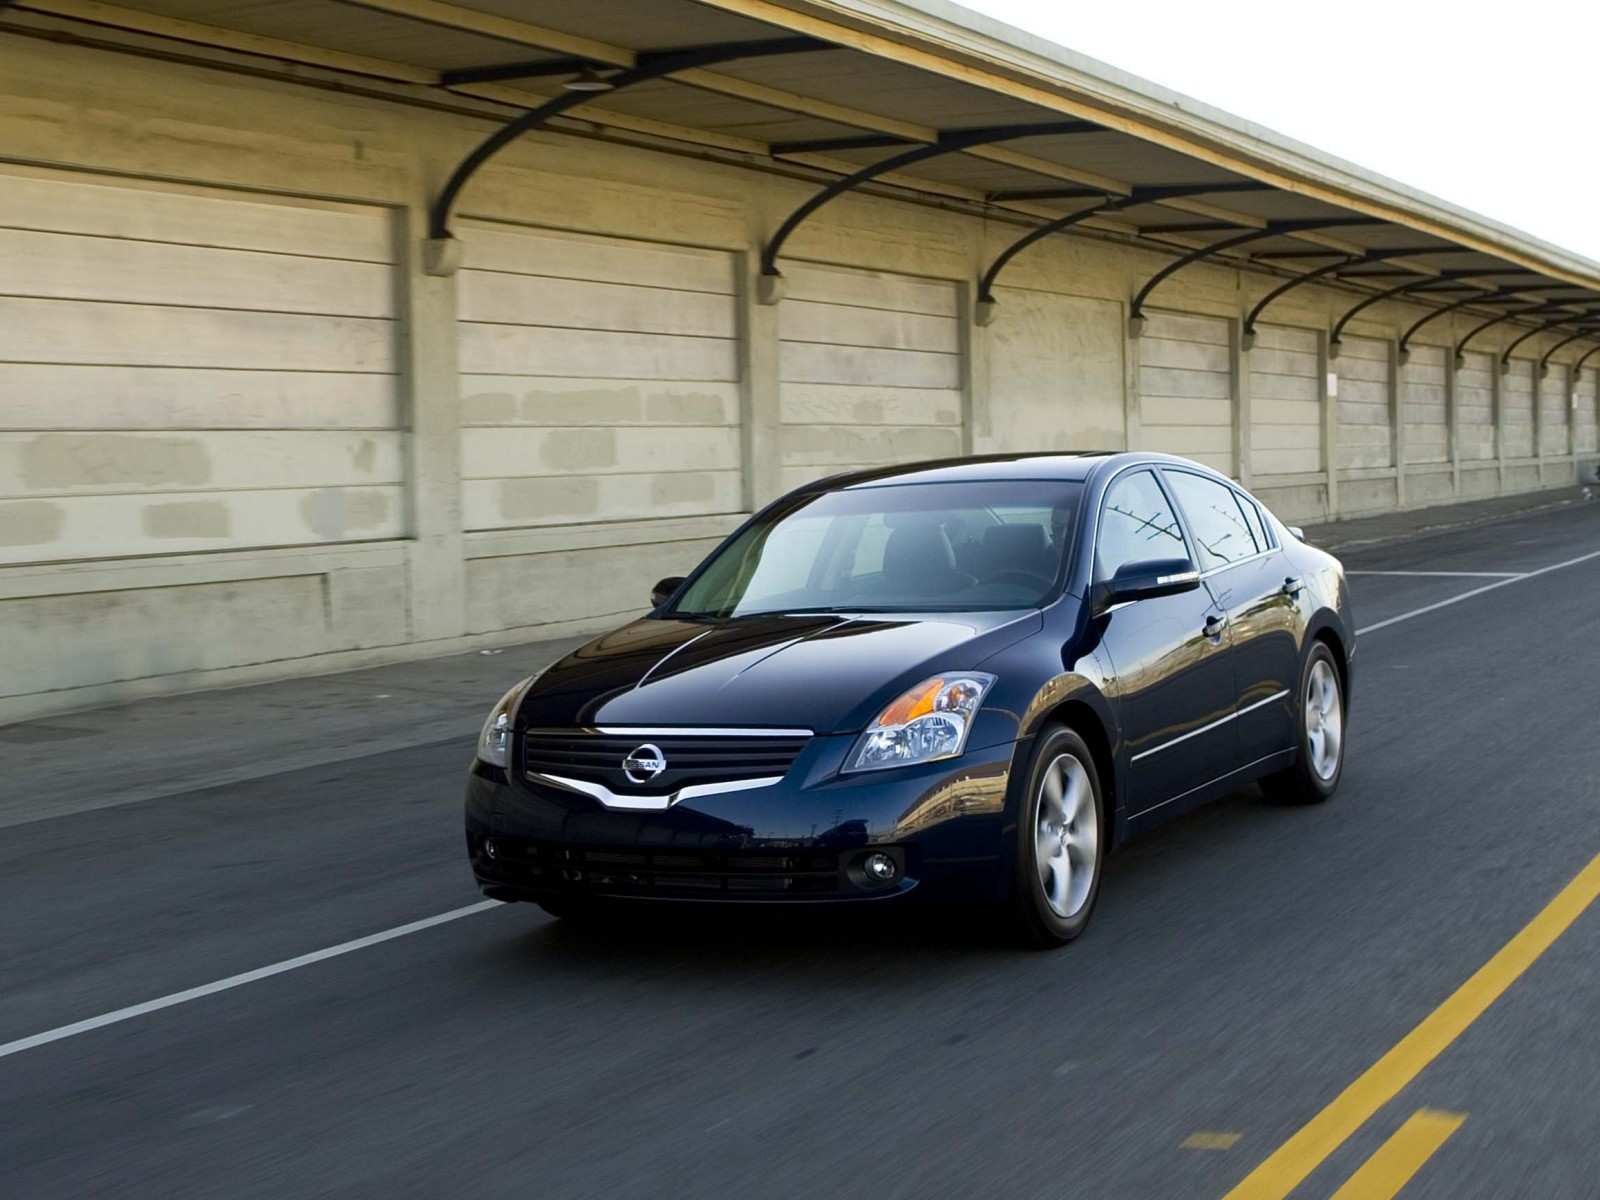 2009 Nissan Altima SL Wallpapers Pictures Specifications ...  2009